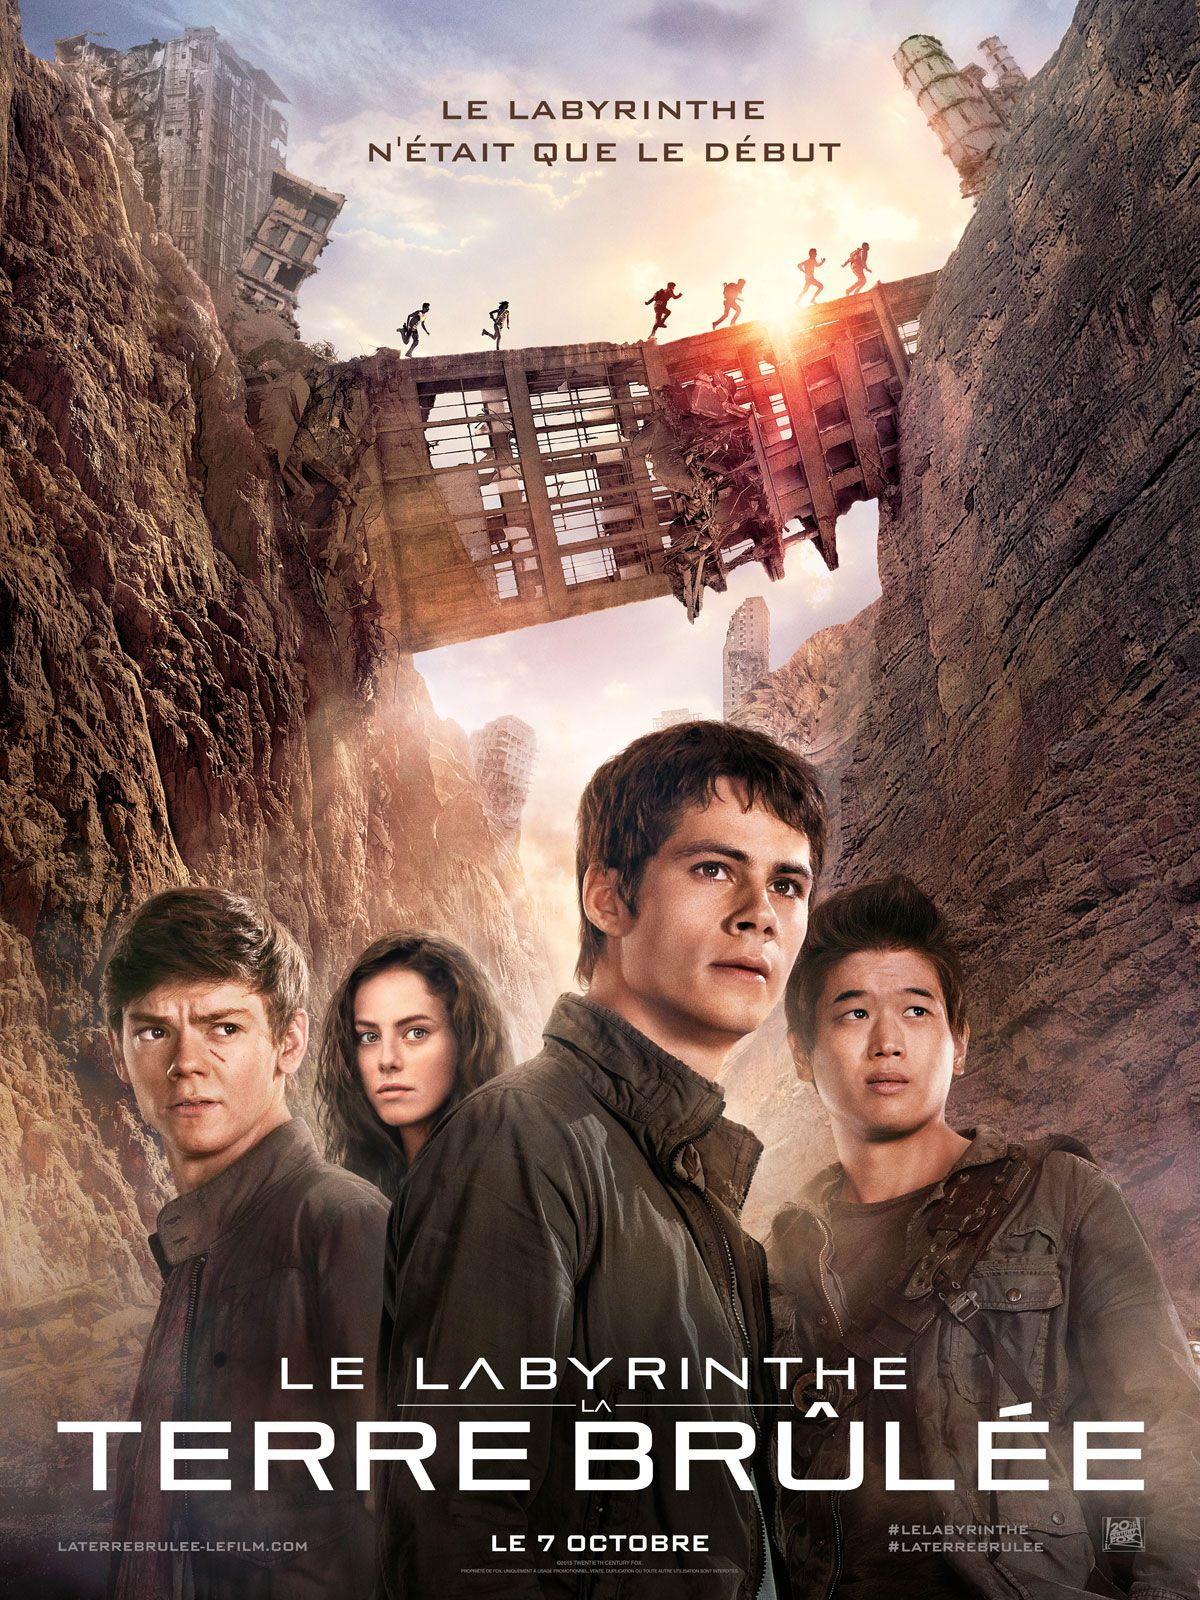 affiche poster labyrinthe terre brulee maze runner scorch trials disney fox